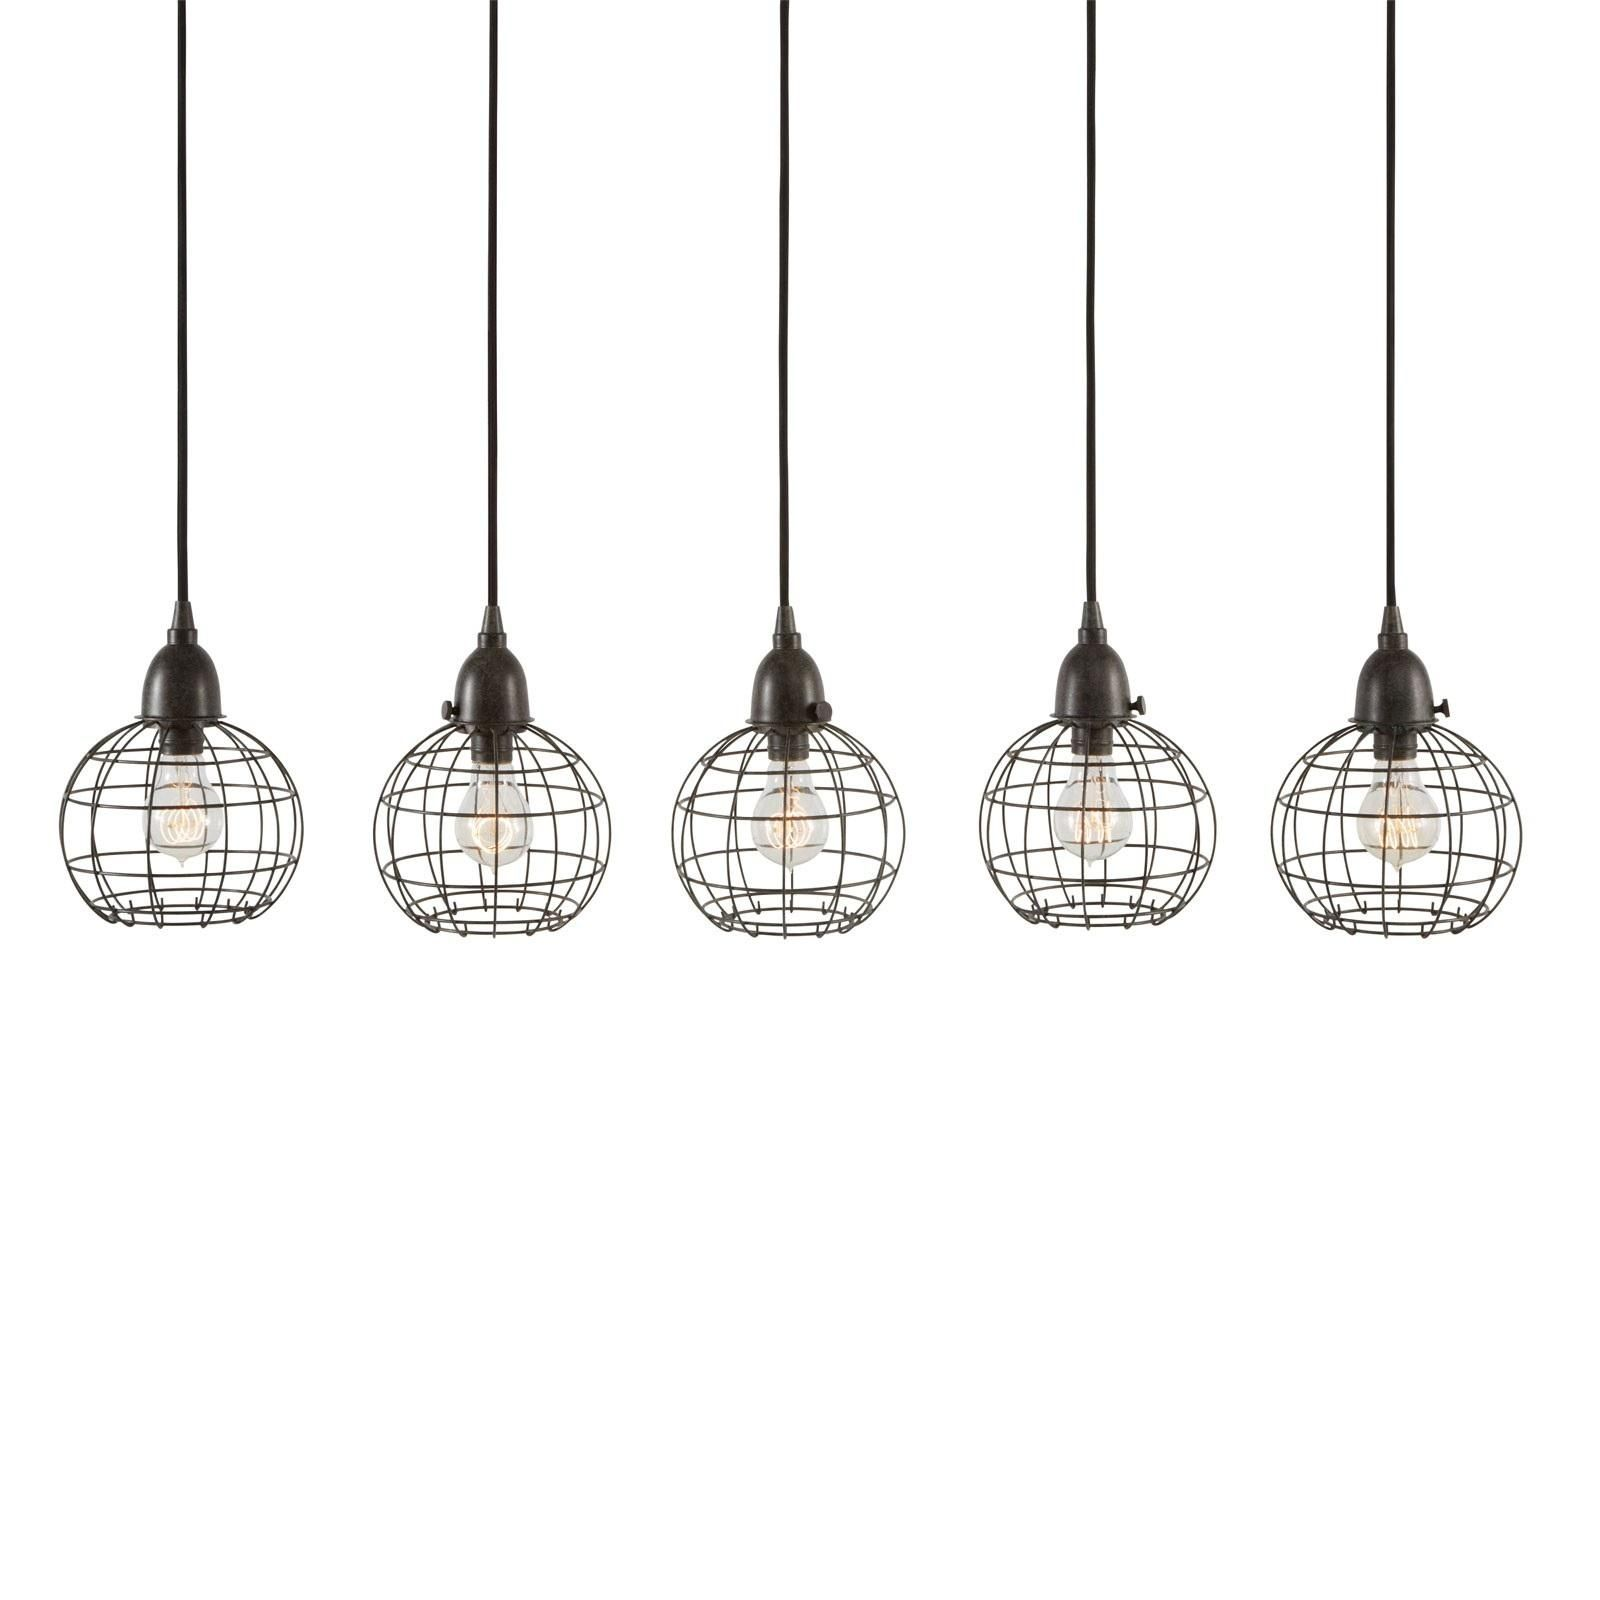 Made from iron wrapped wire cord 40w filament bulb suggested made from iron wrapped wire cord 40w filament bulb suggested hardwired canopy included cord length arubaitofo Choice Image